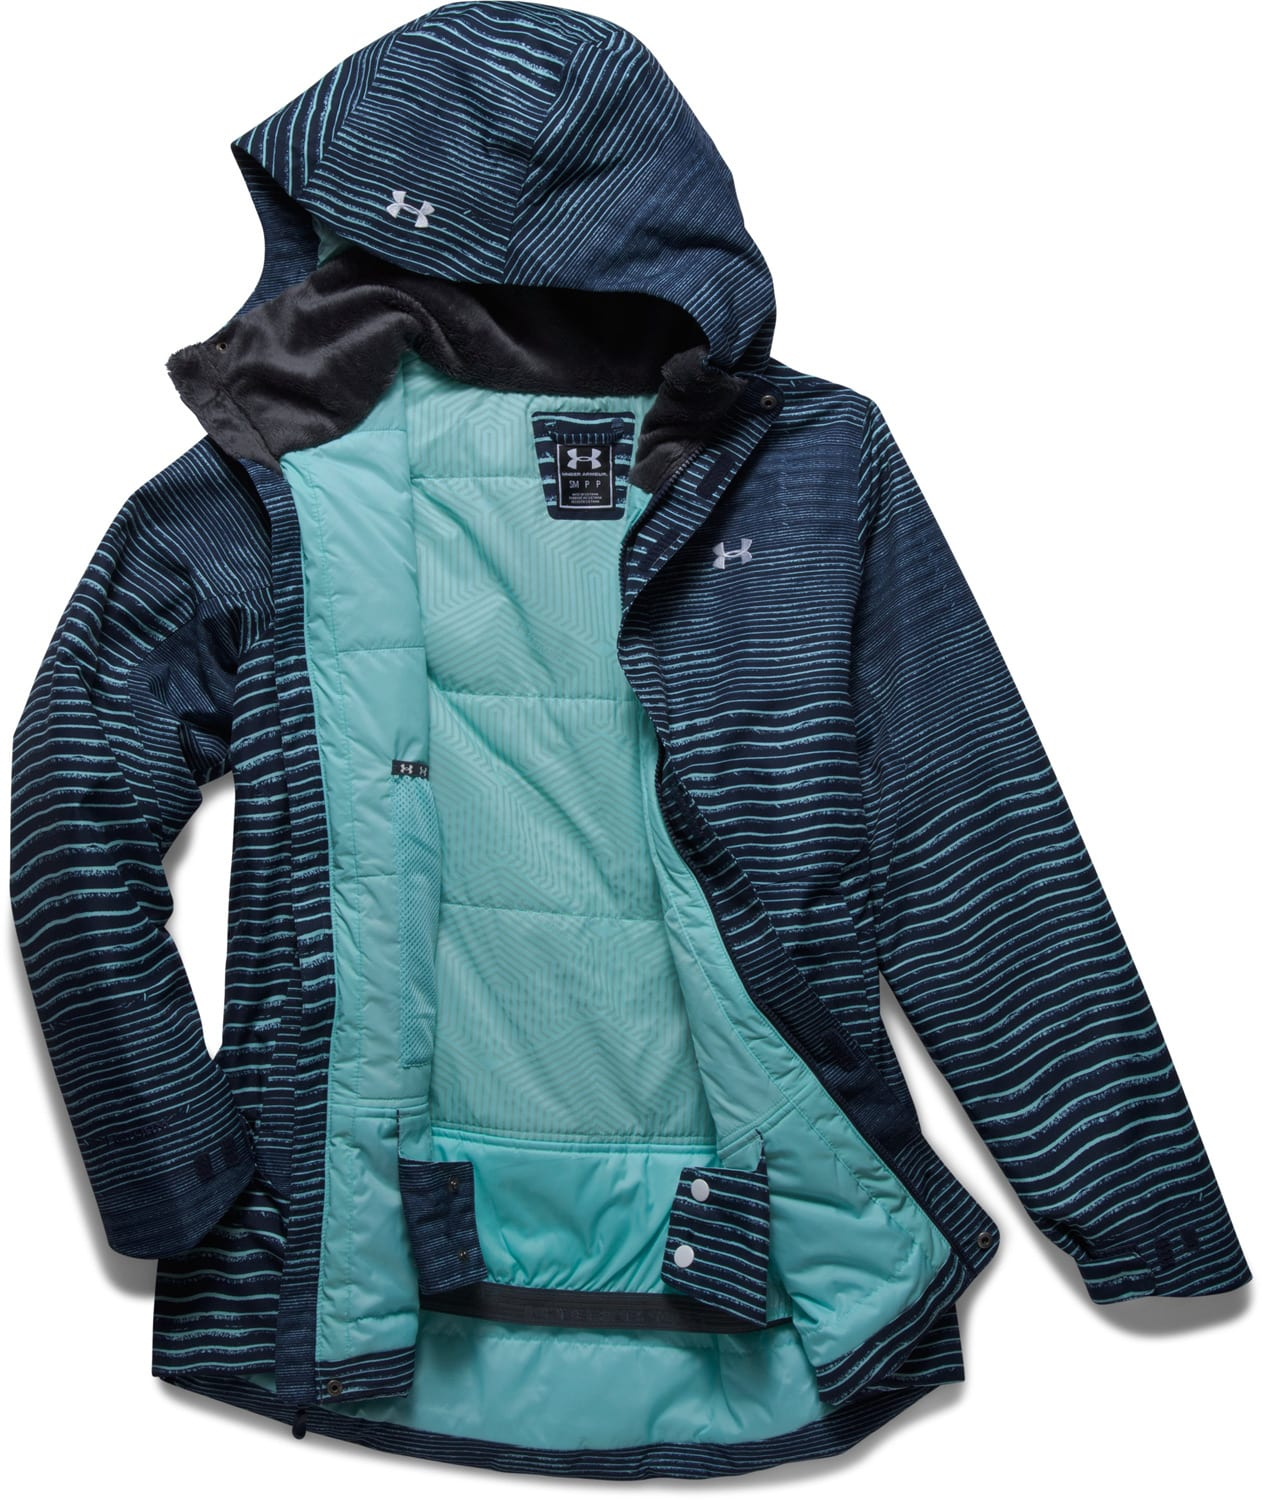 e5066a70b Under Armour ColdGear Infrared Powerline Insulated Snowboard Jacket -  thumbnail 5